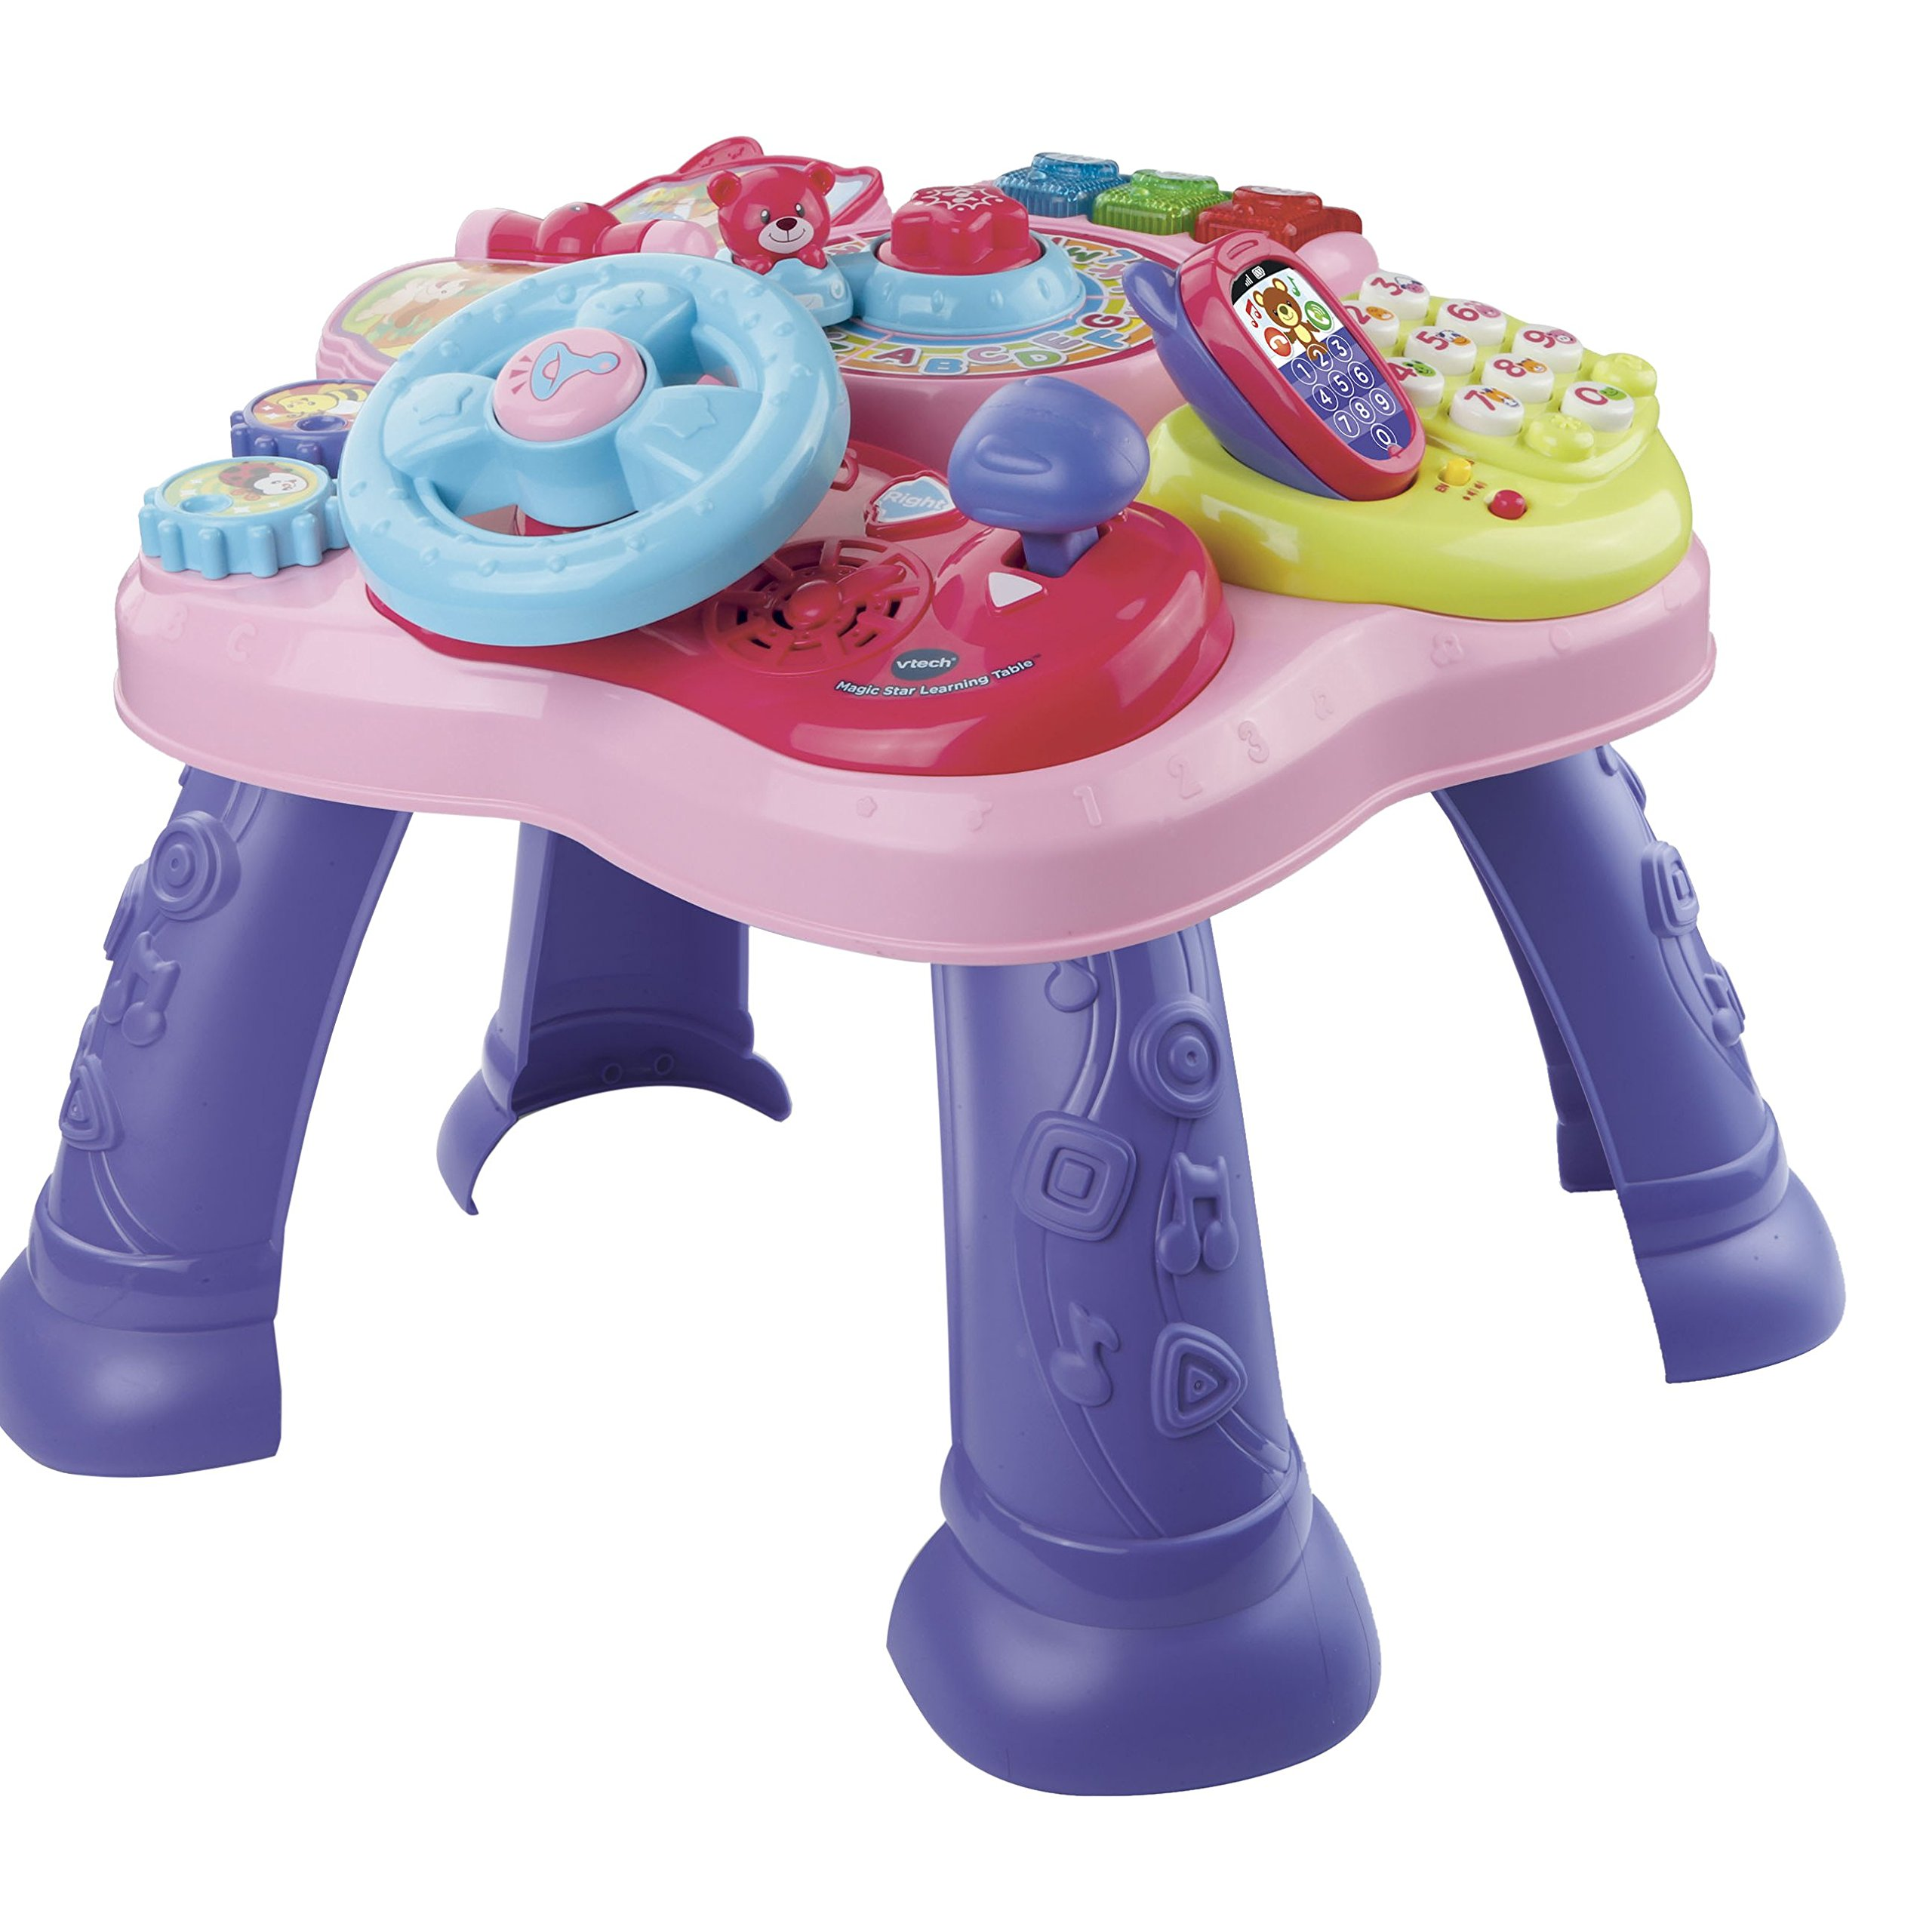 VTech Magic Star Learning Table, Pink (Frustration Free Packaging)